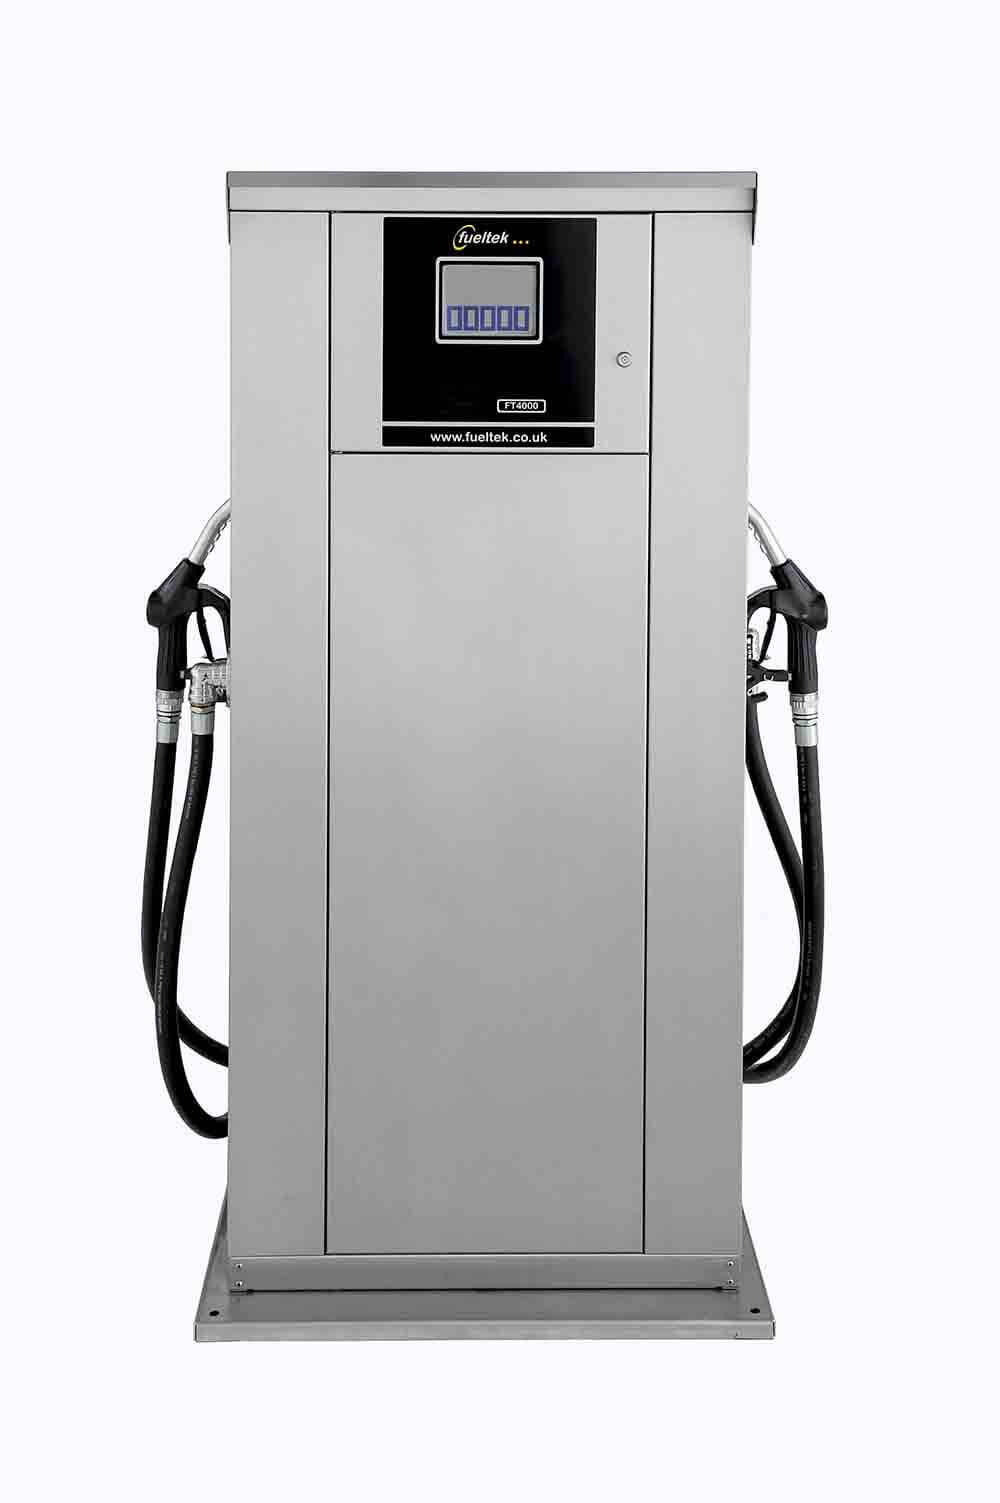 Fueltek FT4000AP with two fuel dispensing nozzles on a white background